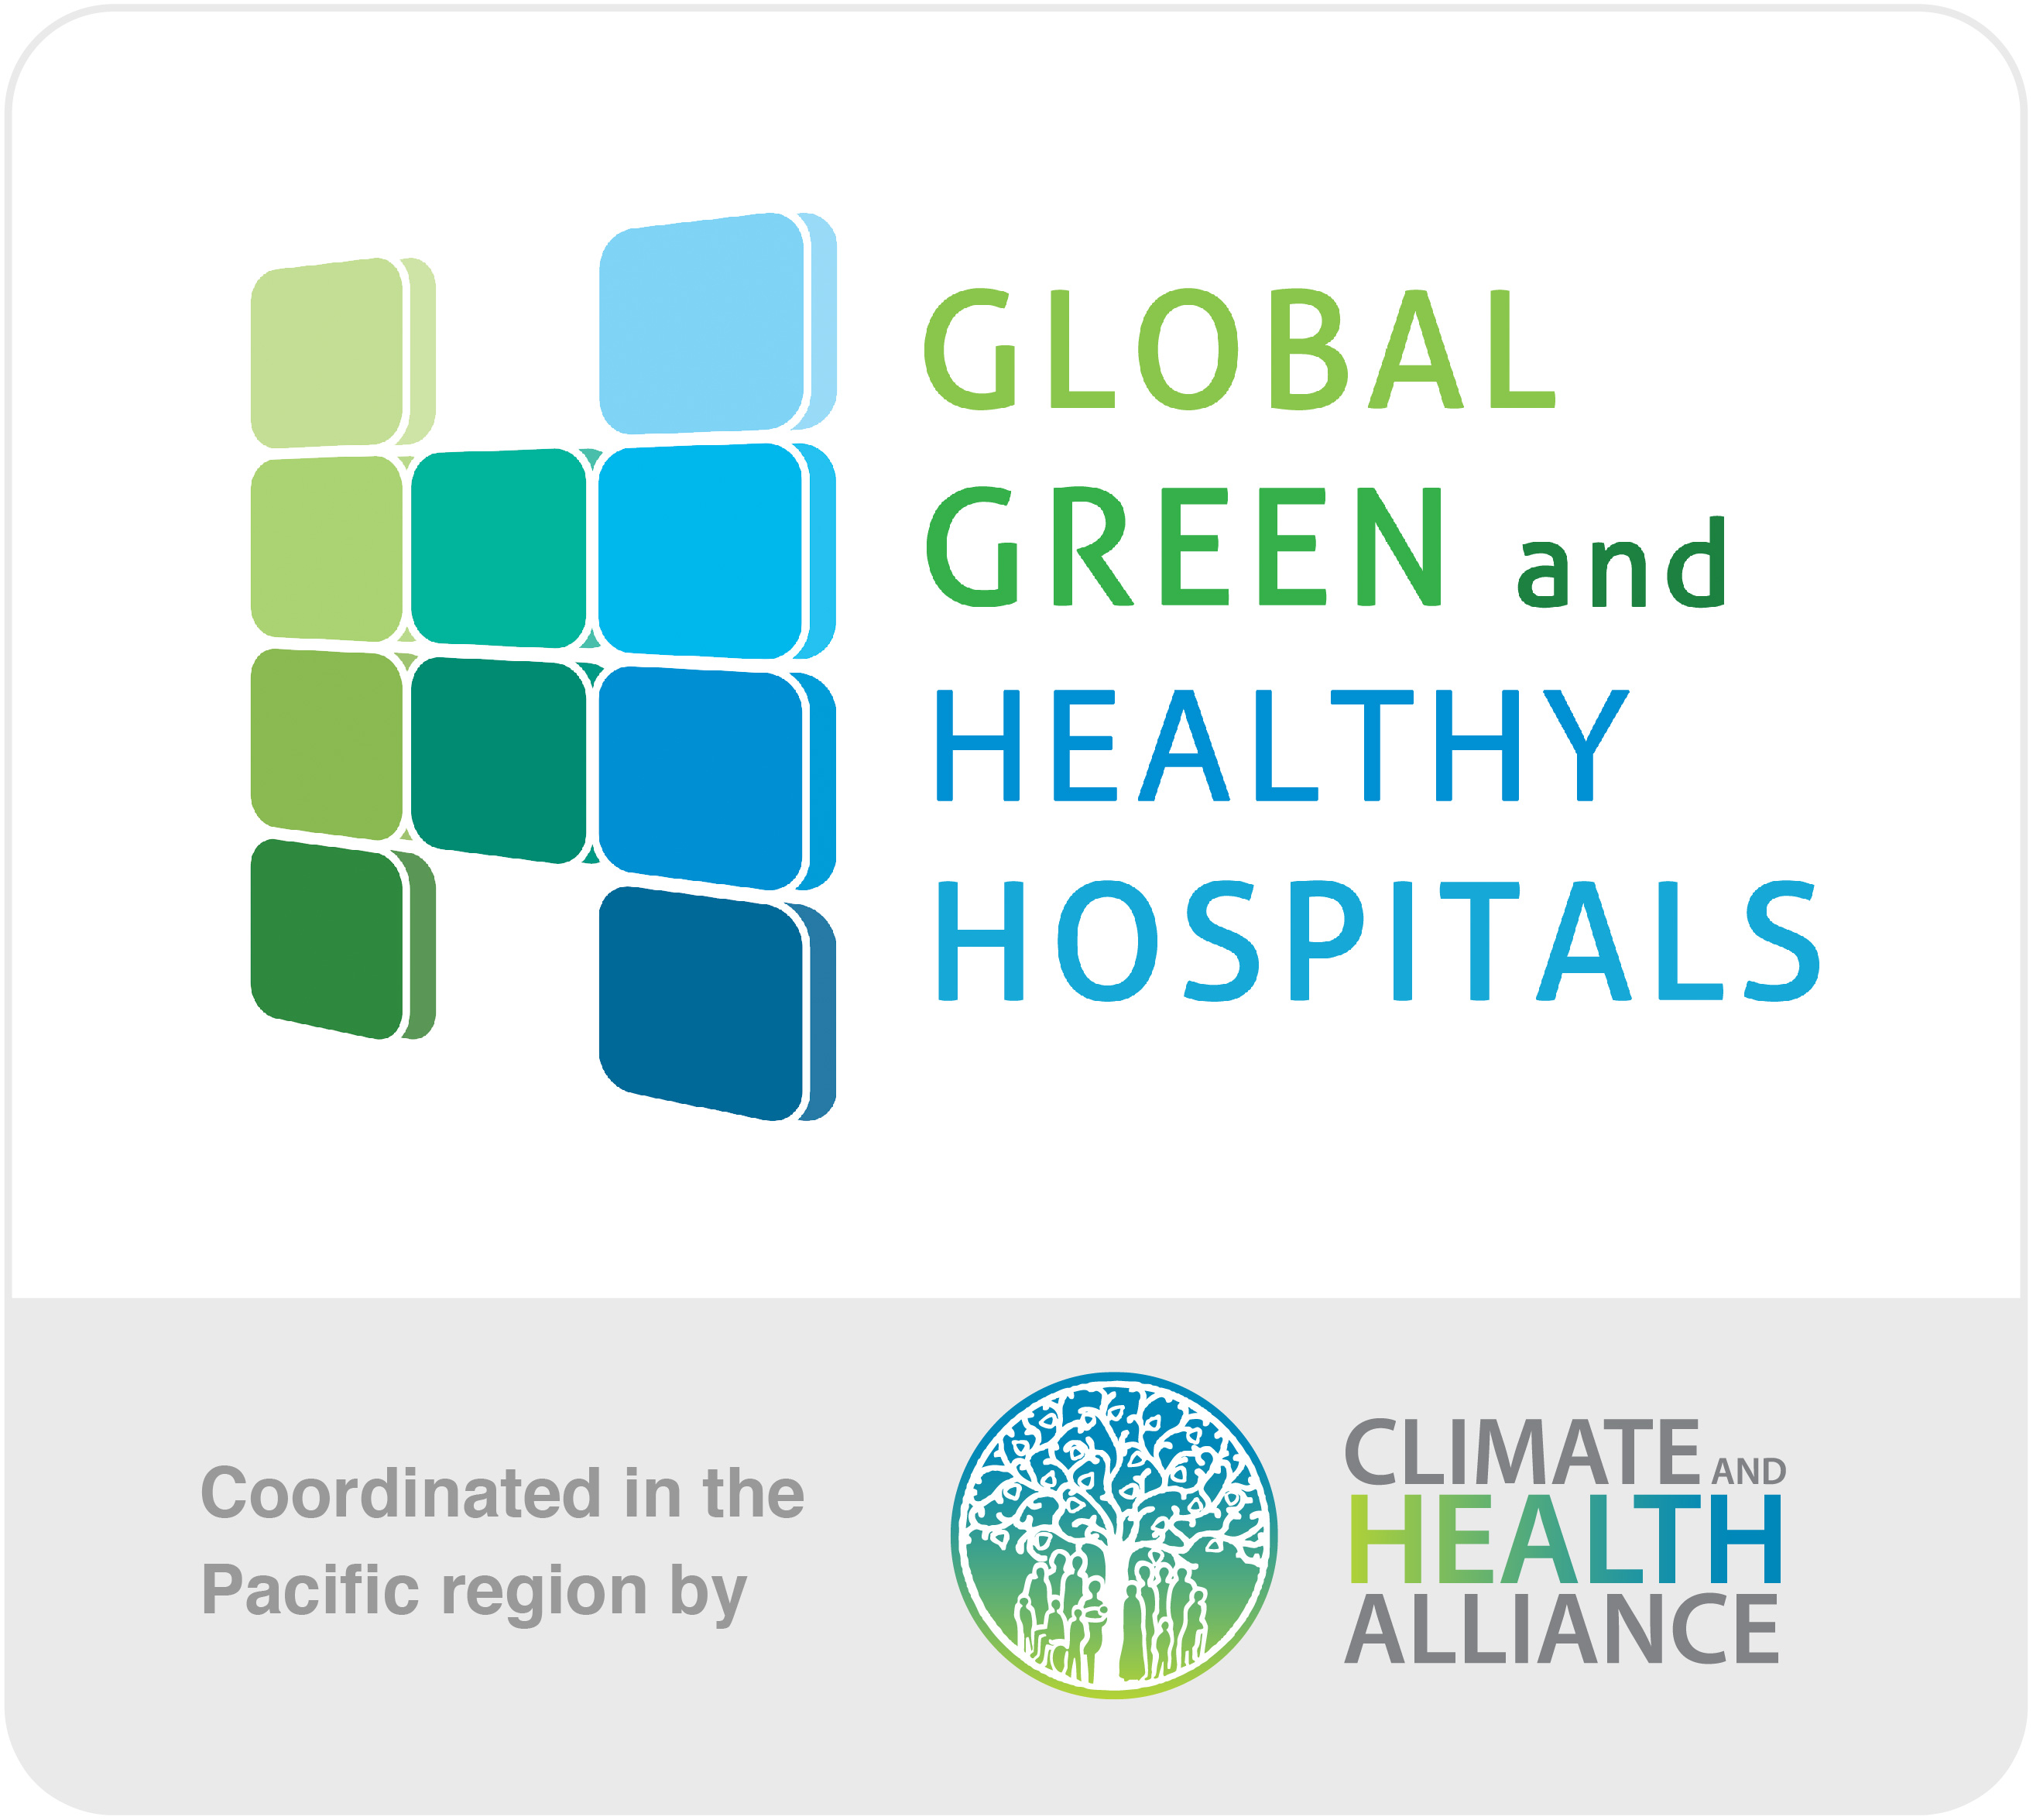 Global Green and Healthy Hospitals logo (256px)